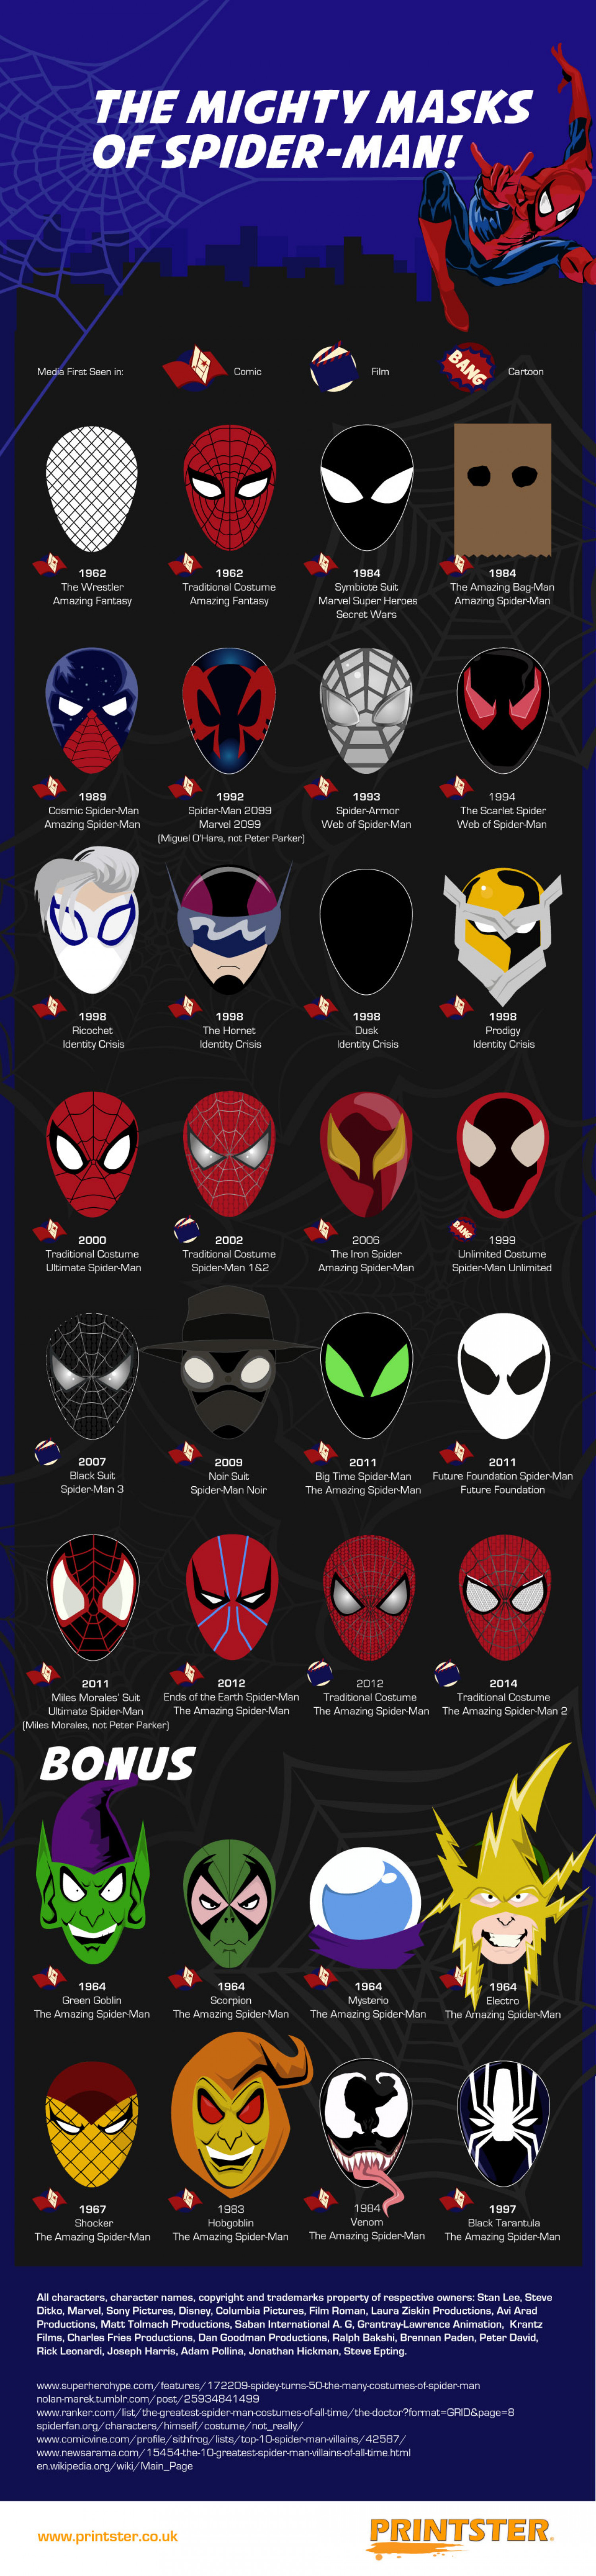 The Mightly Masks of Spider-Man Infographic